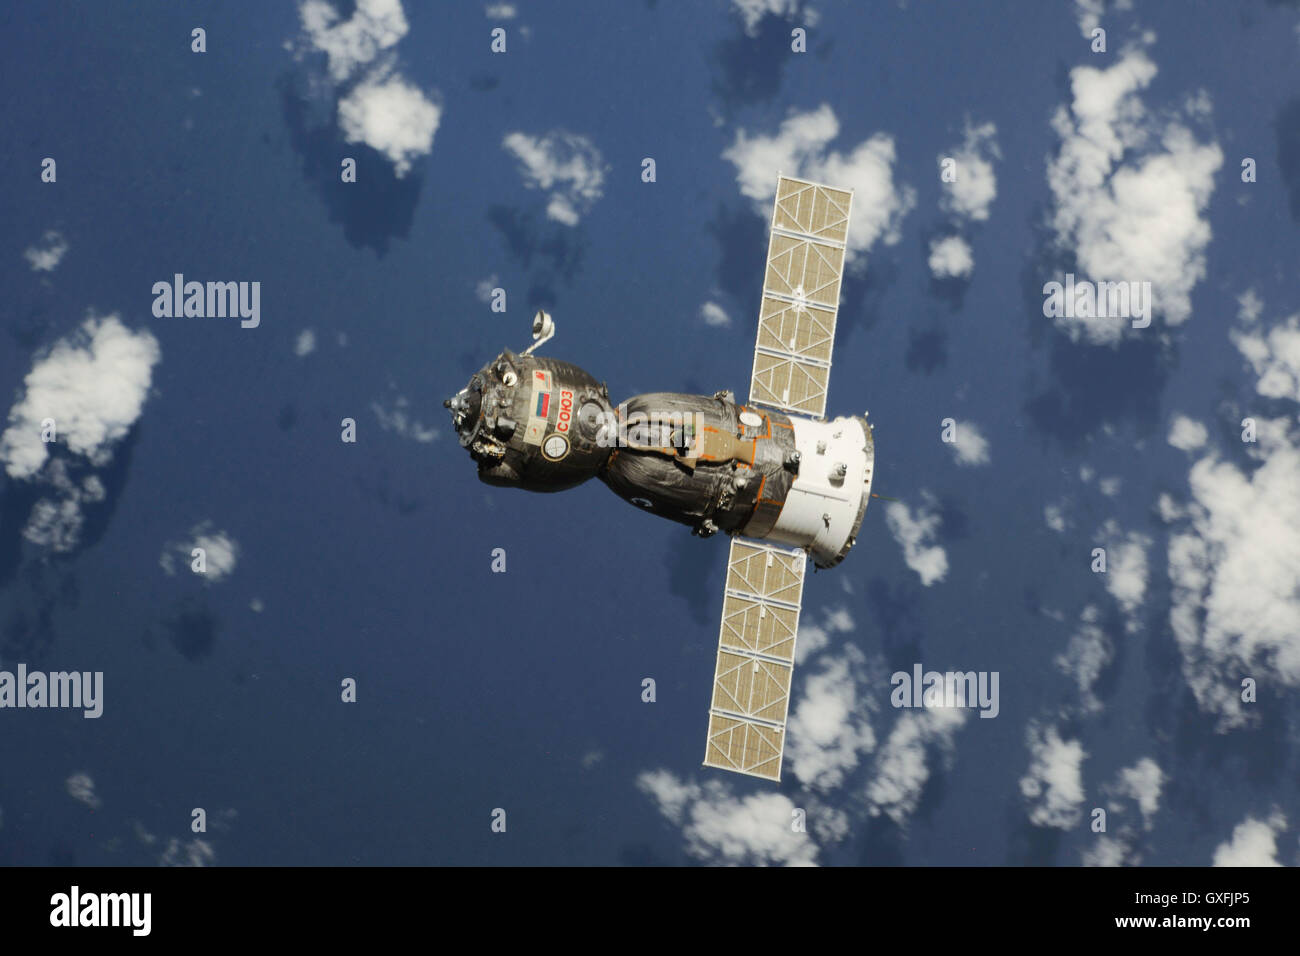 The Soyuz TMA-08M spacecraft travels towards the Earth's surface after undocking from the International Space - Stock Image